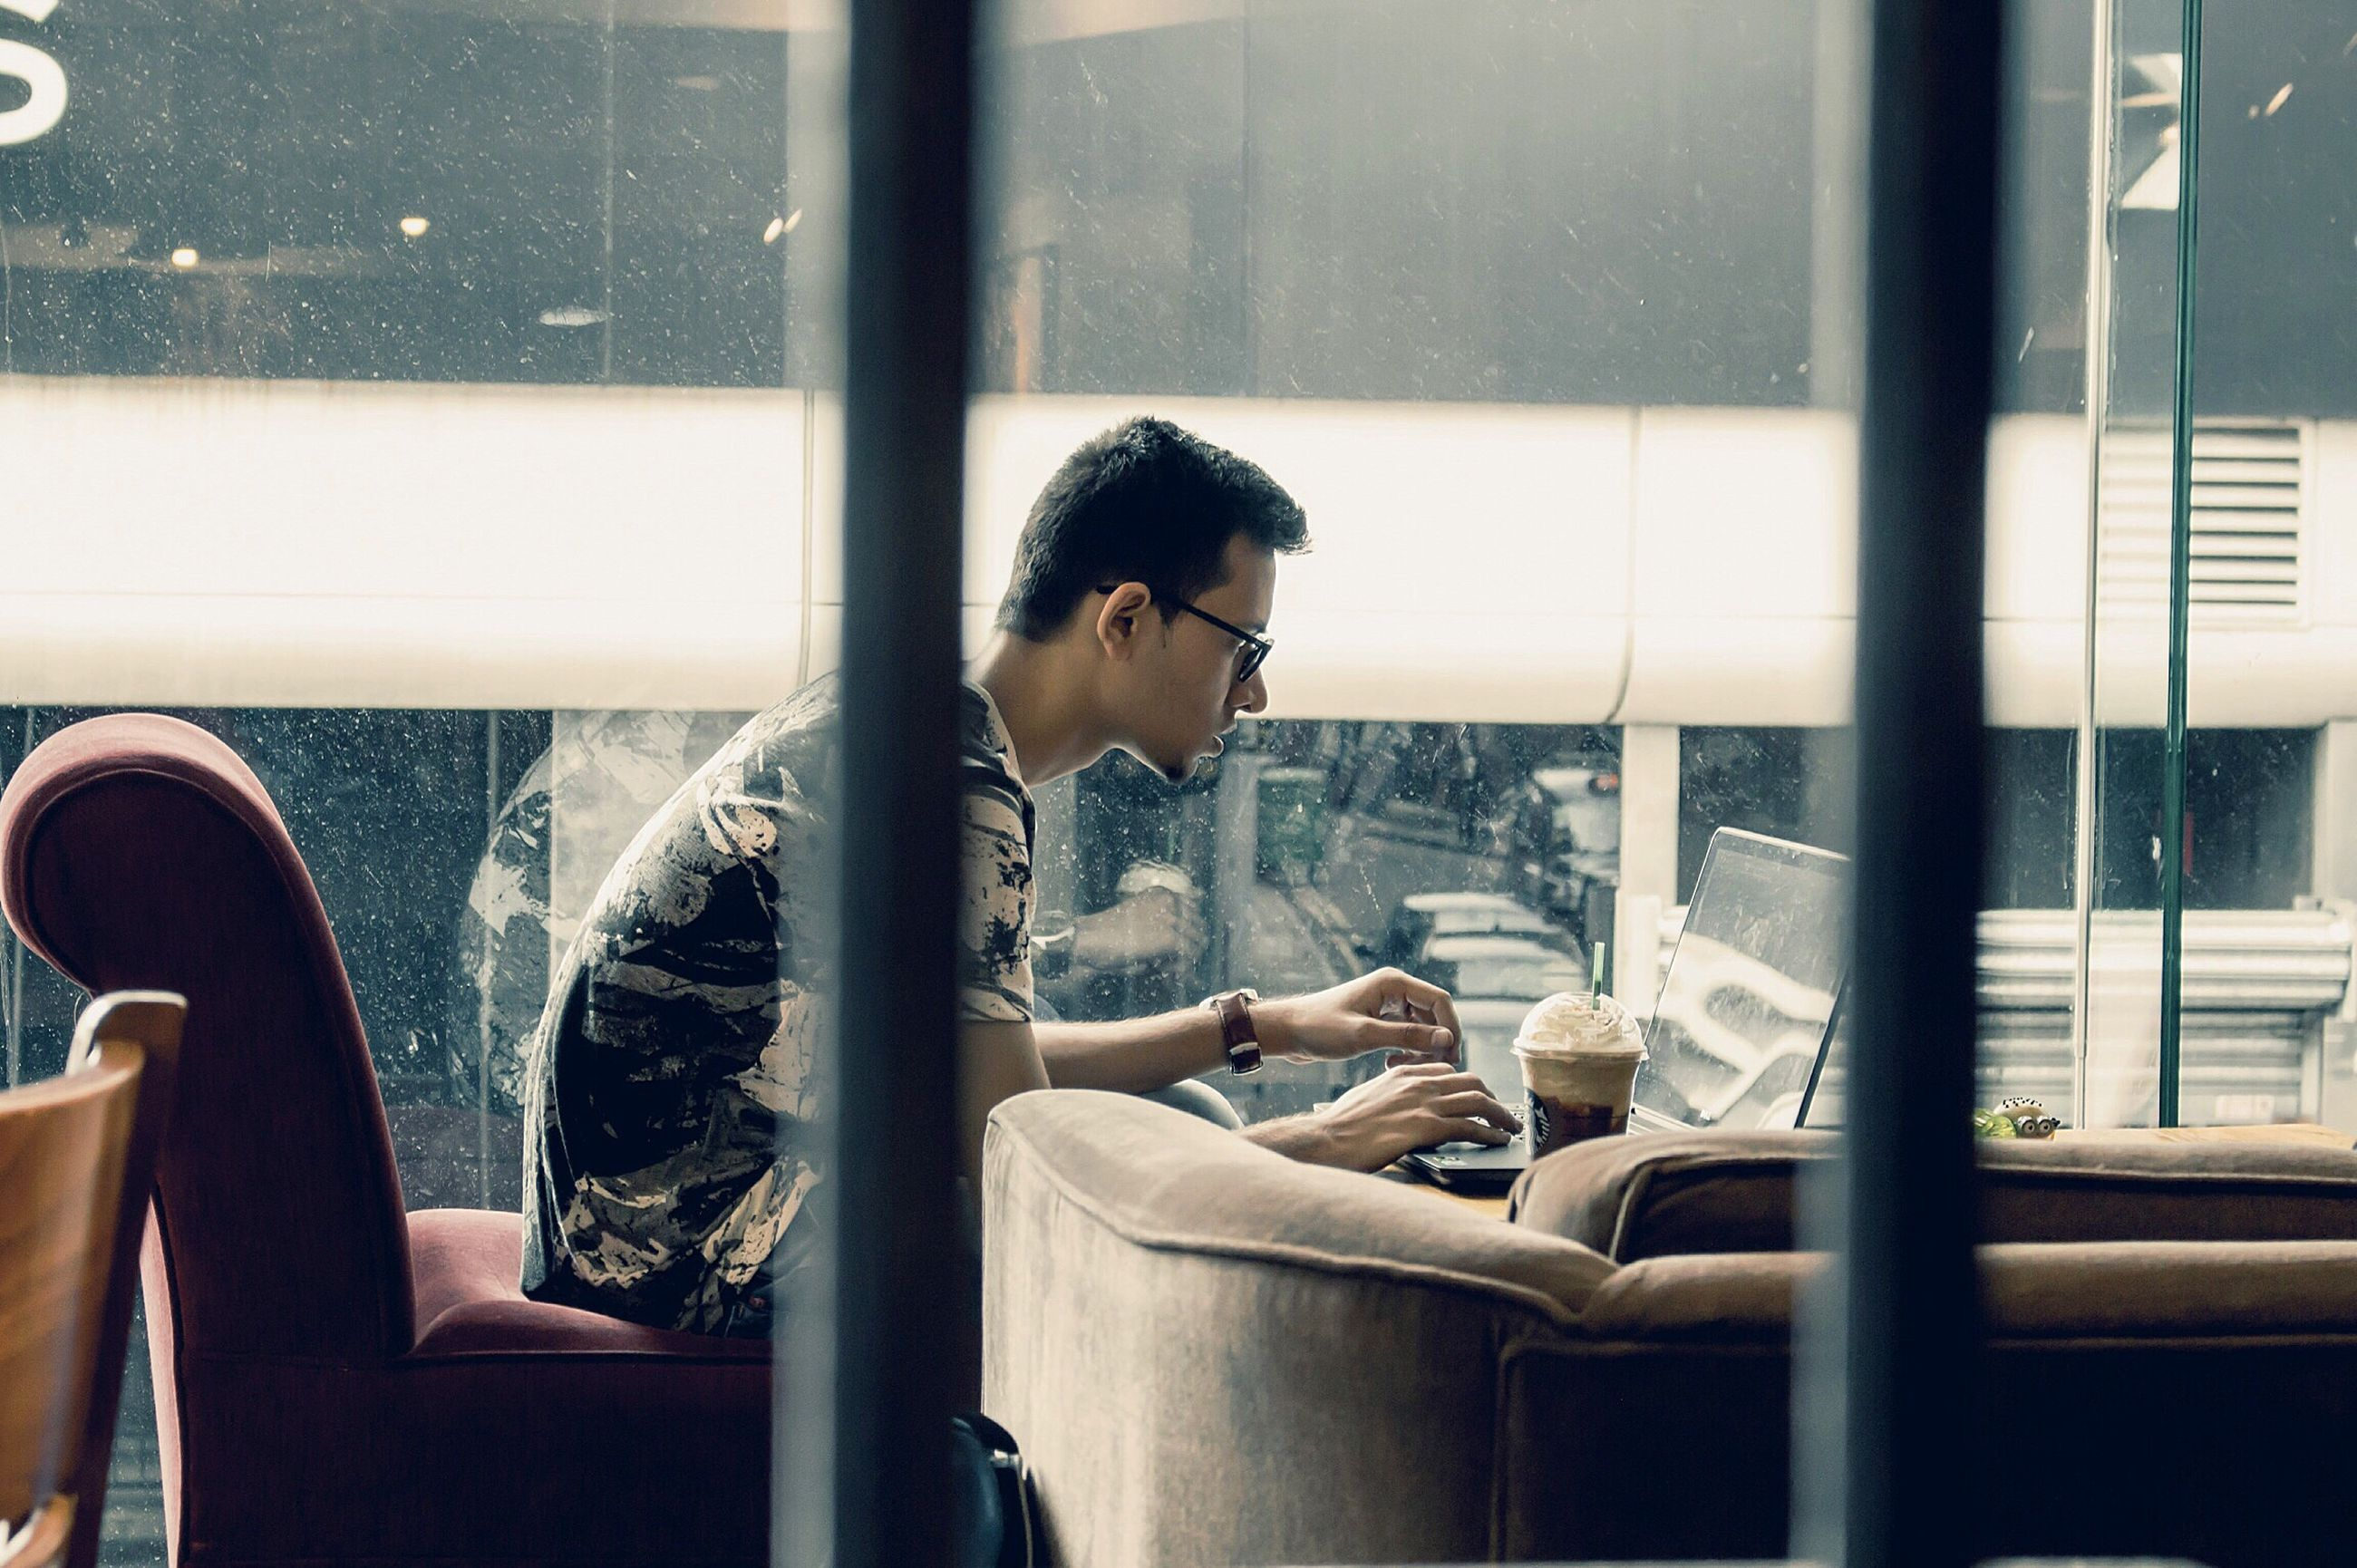 real people, window, sitting, one person, coffee - drink, indoors, coffee cup, eyeglasses, drink, table, side view, cafe, casual clothing, chair, lifestyles, young adult, holding, wireless technology, day, young women, technology